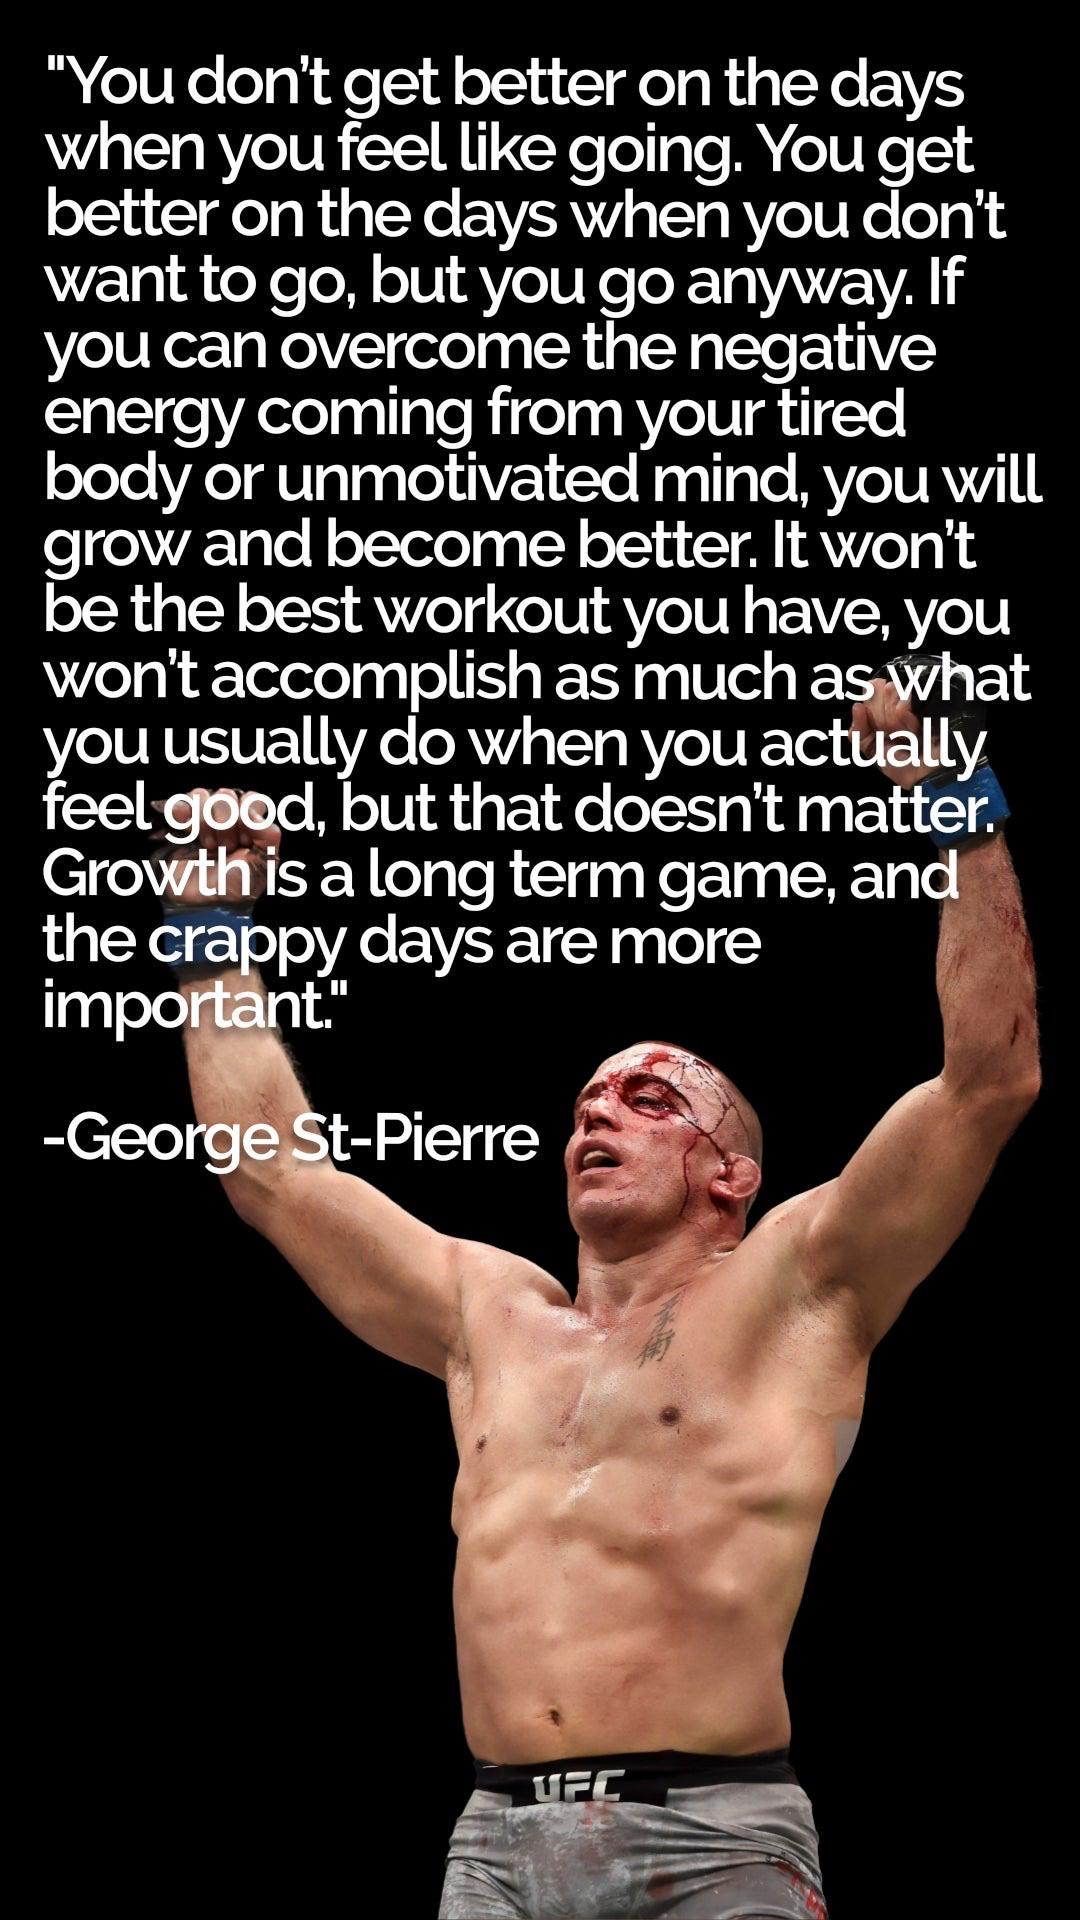 """""""You don't get better on the days when you feel like going. You get better on the days when you don't want to go, but you go anyway. If you can overcome the negative energy coming from your tired body or unmotivated mind, you will grow and become better. It won't be the best workout you have, you won't accomplish as much What you usually do when you actually feel moi, but that doesn't matter? Grow is a long term game, and' the cra'o by days are more ' im 0 o' t."""" https://inspirational.ly"""